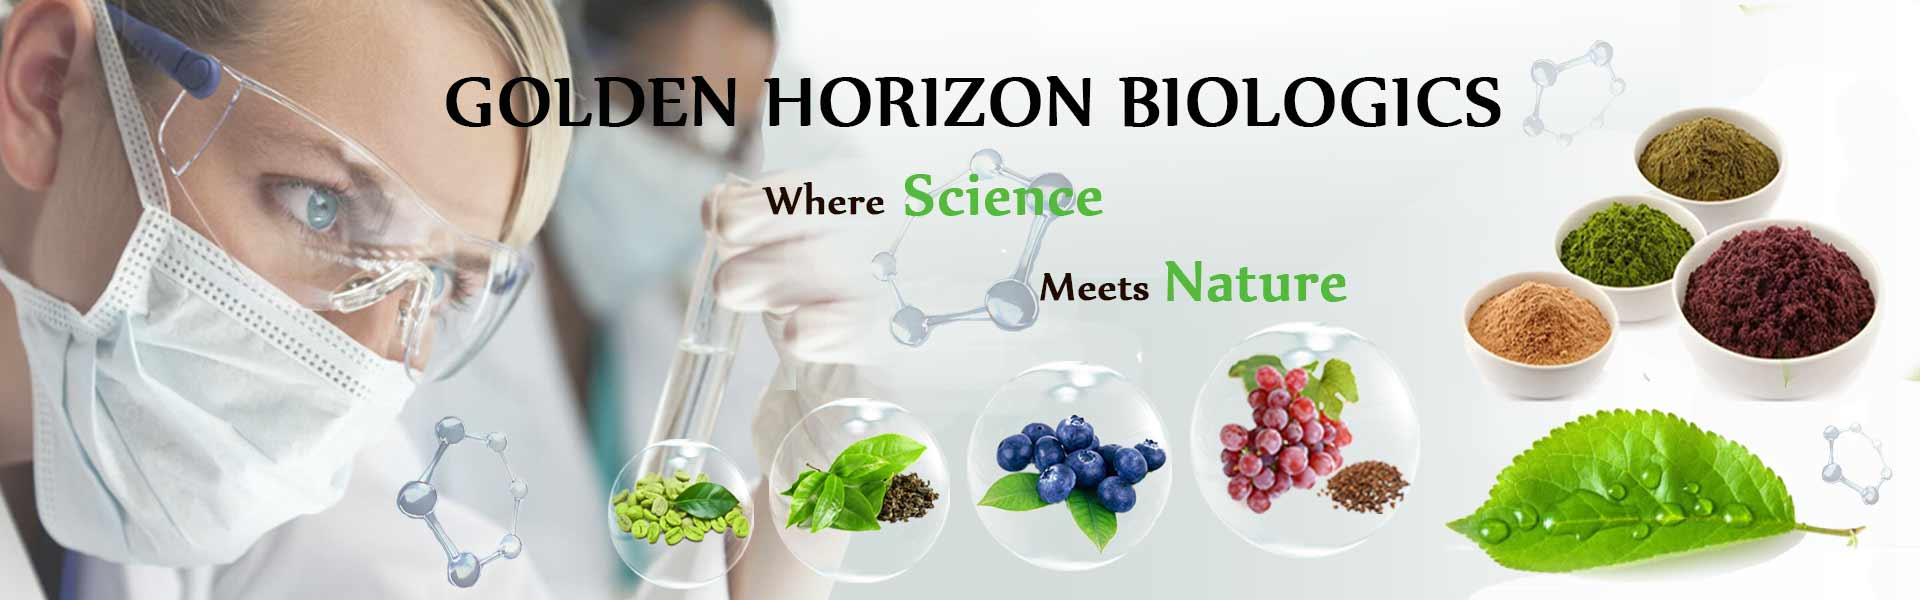 Golden Horizon Biologics